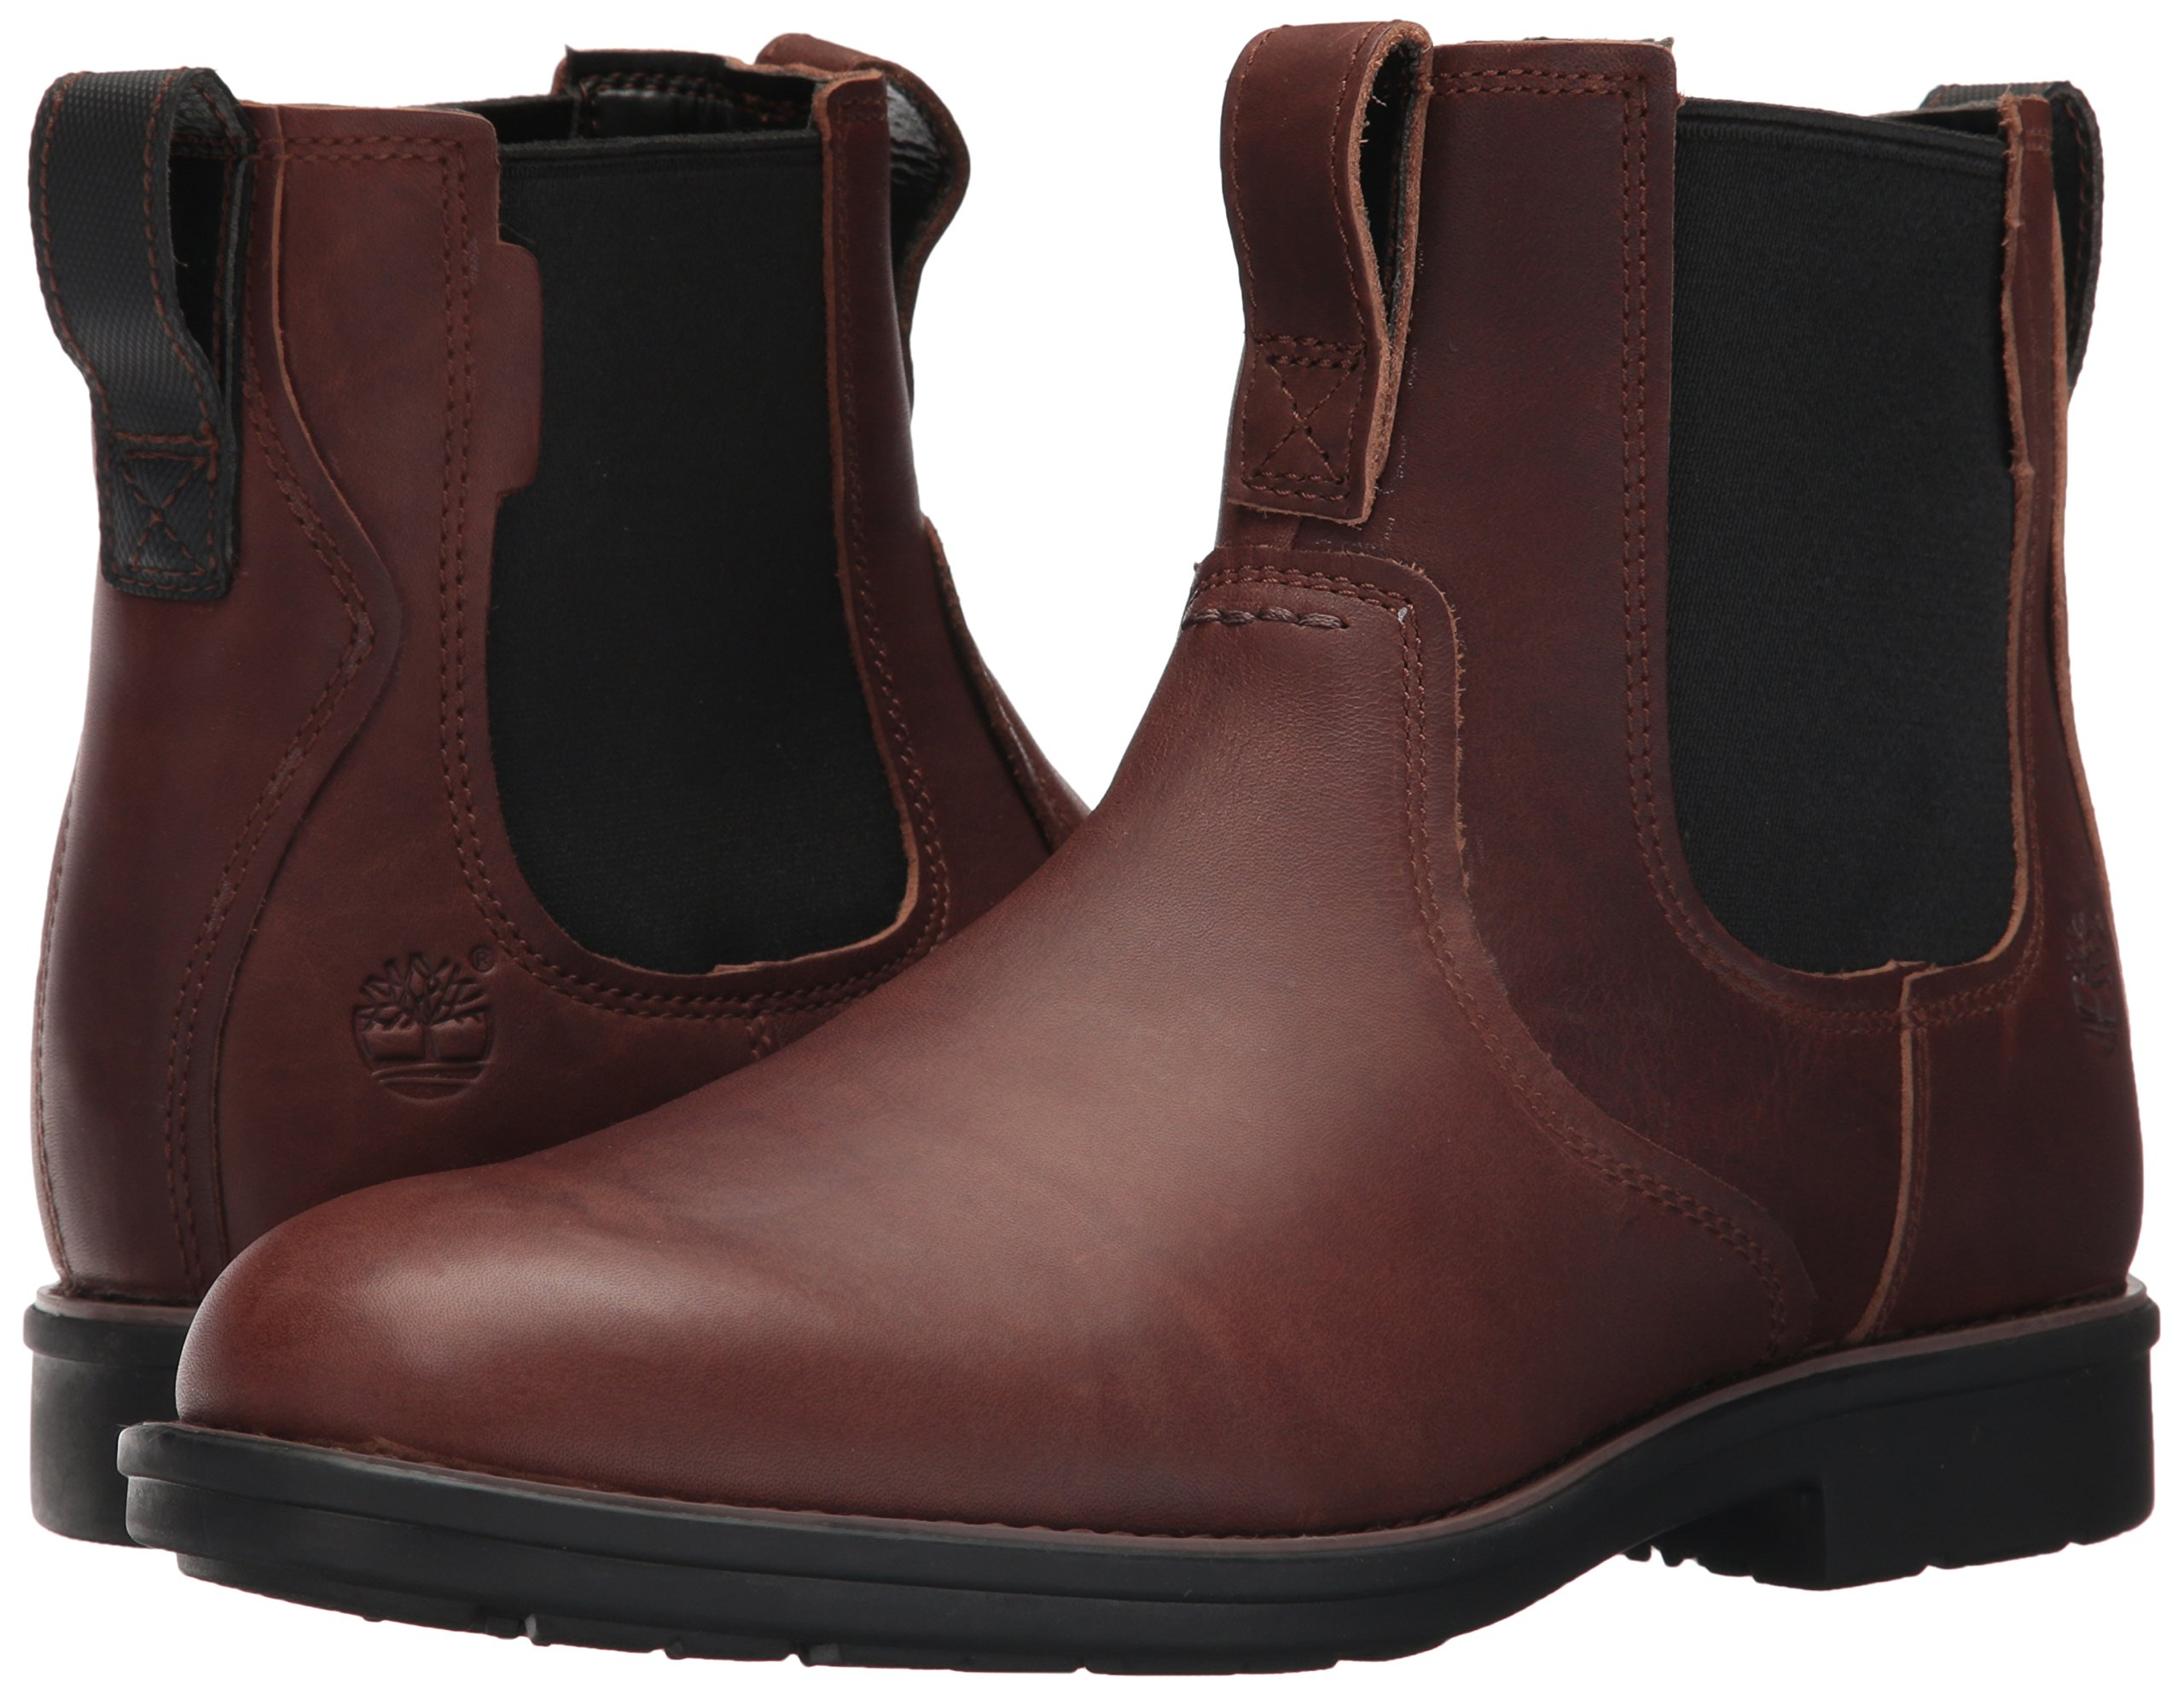 Timberland Men's Carter Notch Chelsea Boot, Dark Brown Full Grain, 14 C US by Timberland (Image #6)